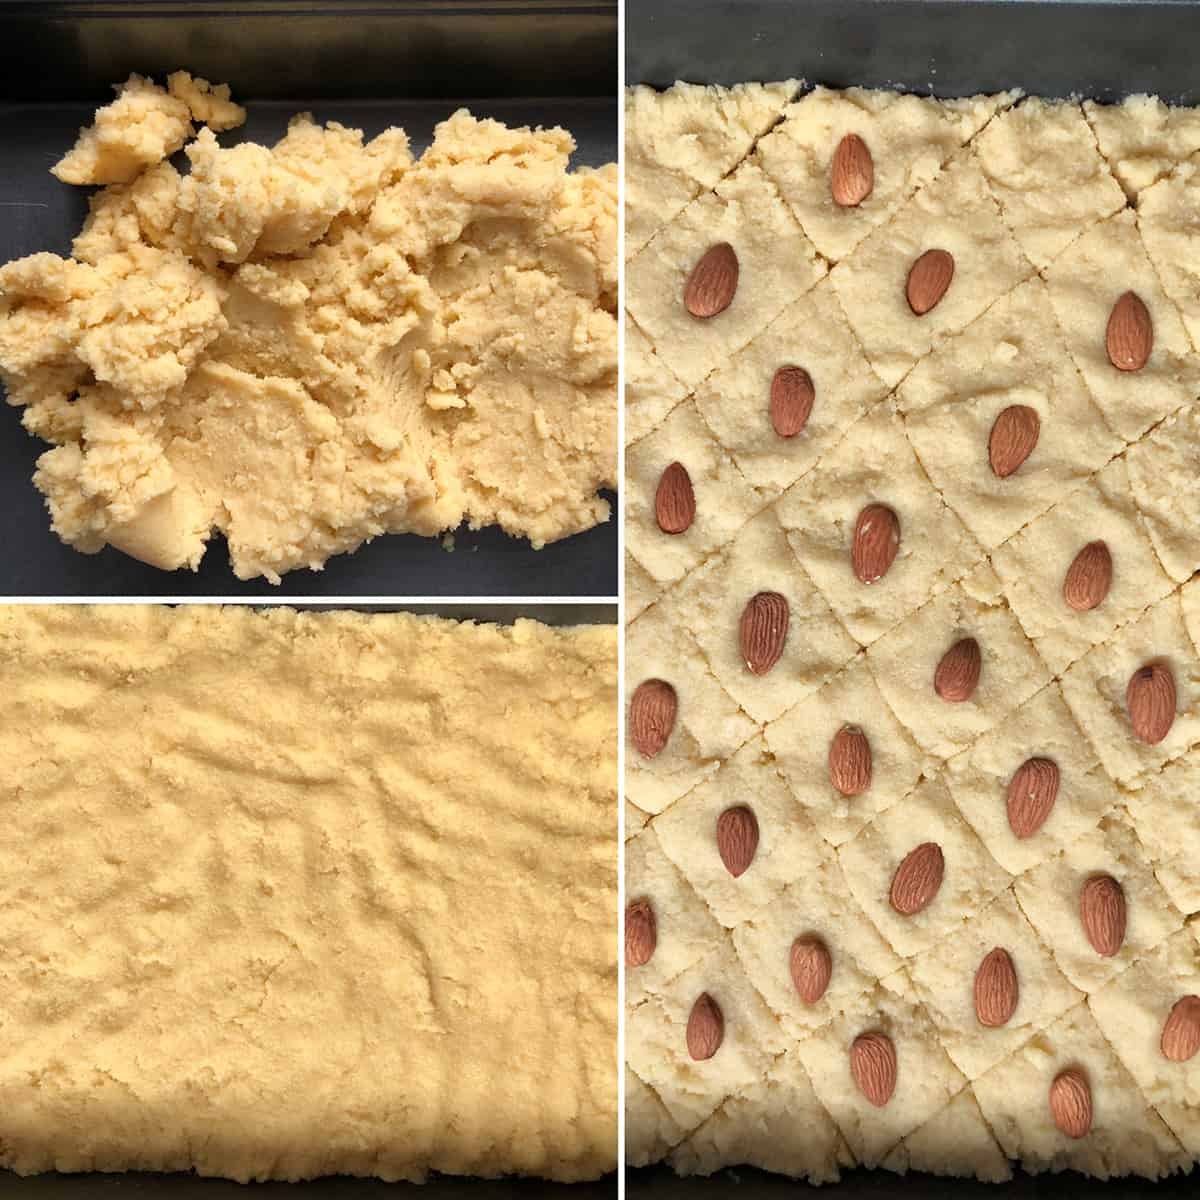 cake batter evenly spread in a baking pan, scored and topped with whole almonds